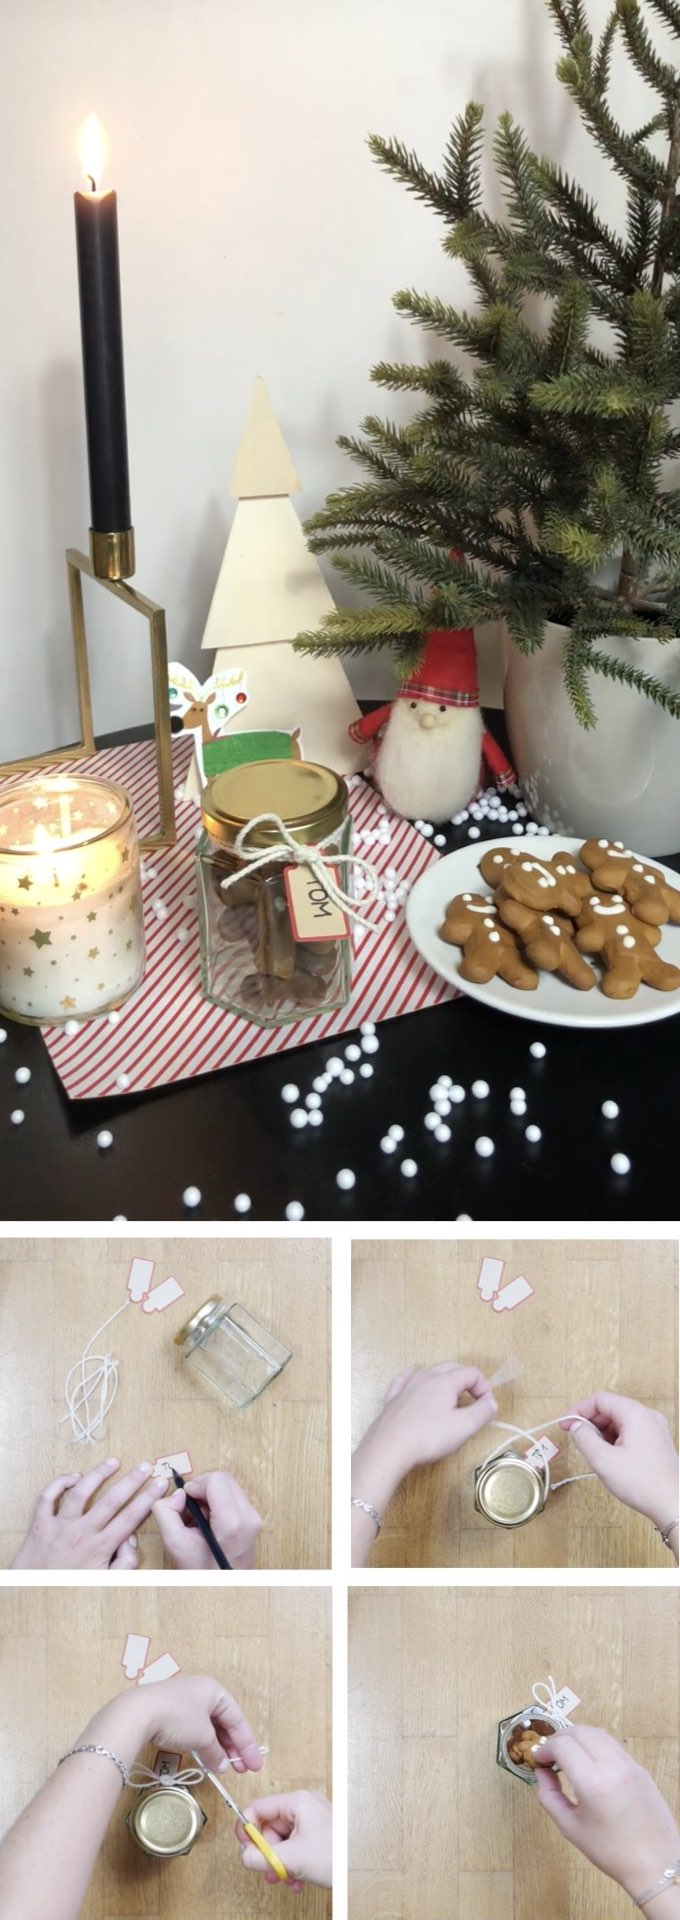 recycler des pots en verre biscuits porte nom table blog déco clem around the corner